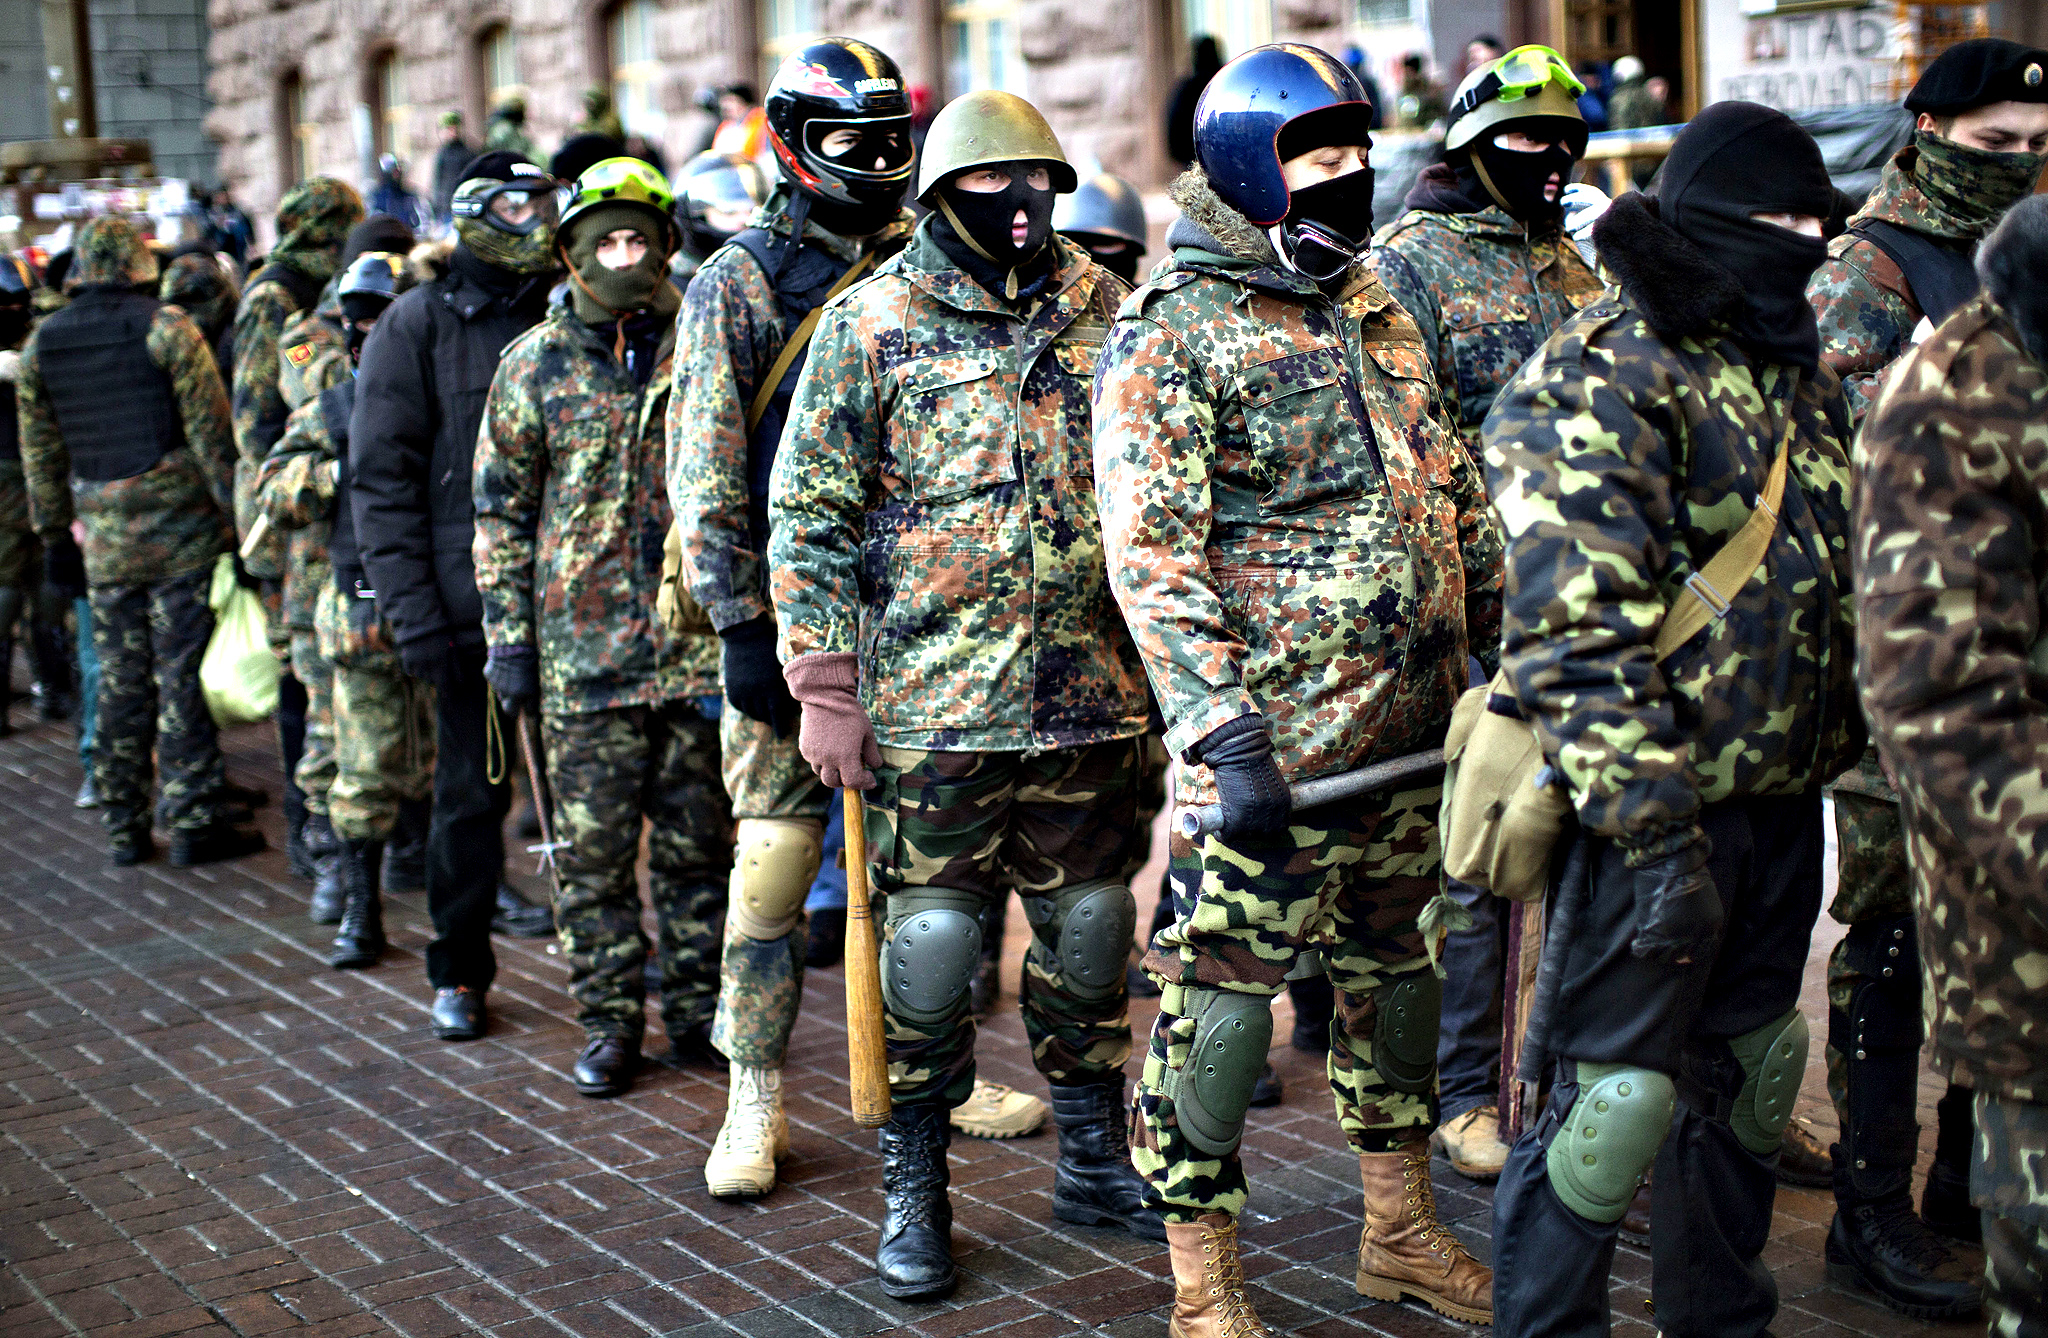 Opposition supporters in military uniforms and carrying sticks as weapons, line up in front of the city council building before marching in central Kiev, Ukraine, Tuesday, Feb. 4, 2014. Ukraine's parliament convenes amid tensions as the country's political crisis persists into its third month. Opposition lawmakers seek to push through a measure for broad amnesty for people arrested in the protests that have gripped the capital, but prospects of passage appear unpromising.